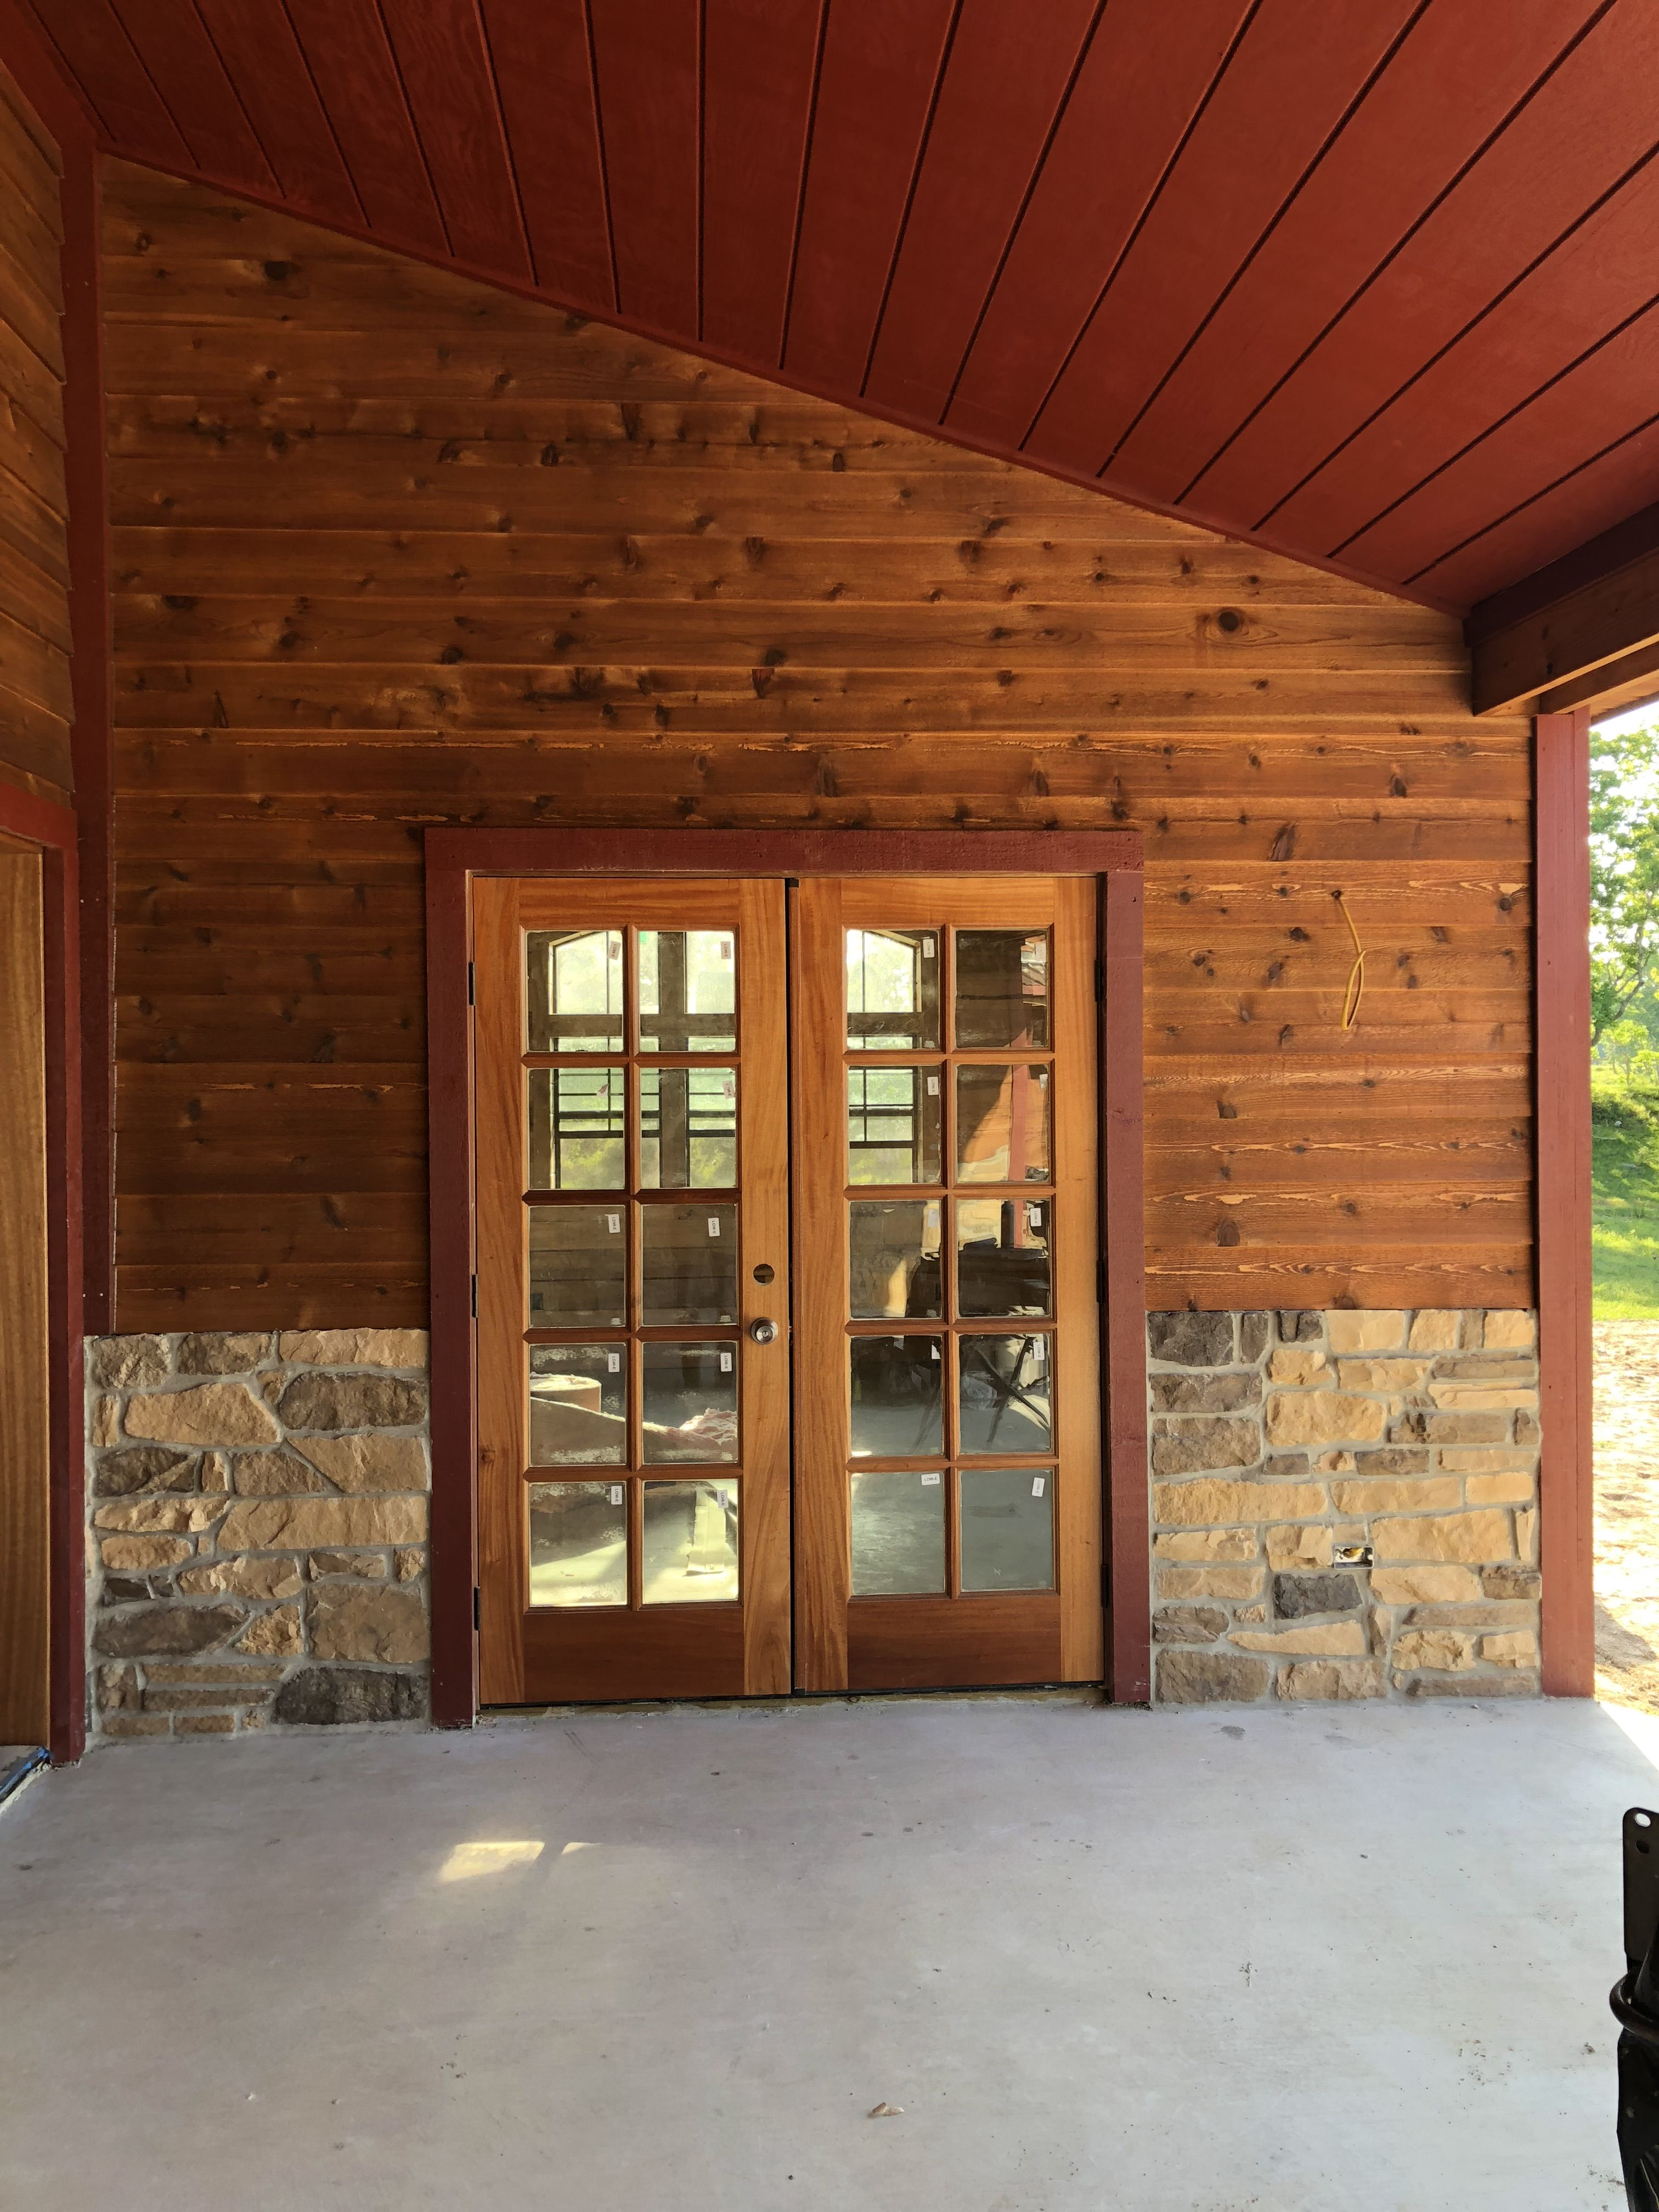 Idea By Smithbrandy1969 On Home Stone Exterior Houses Wood Siding Exterior Rustic Barn Homes